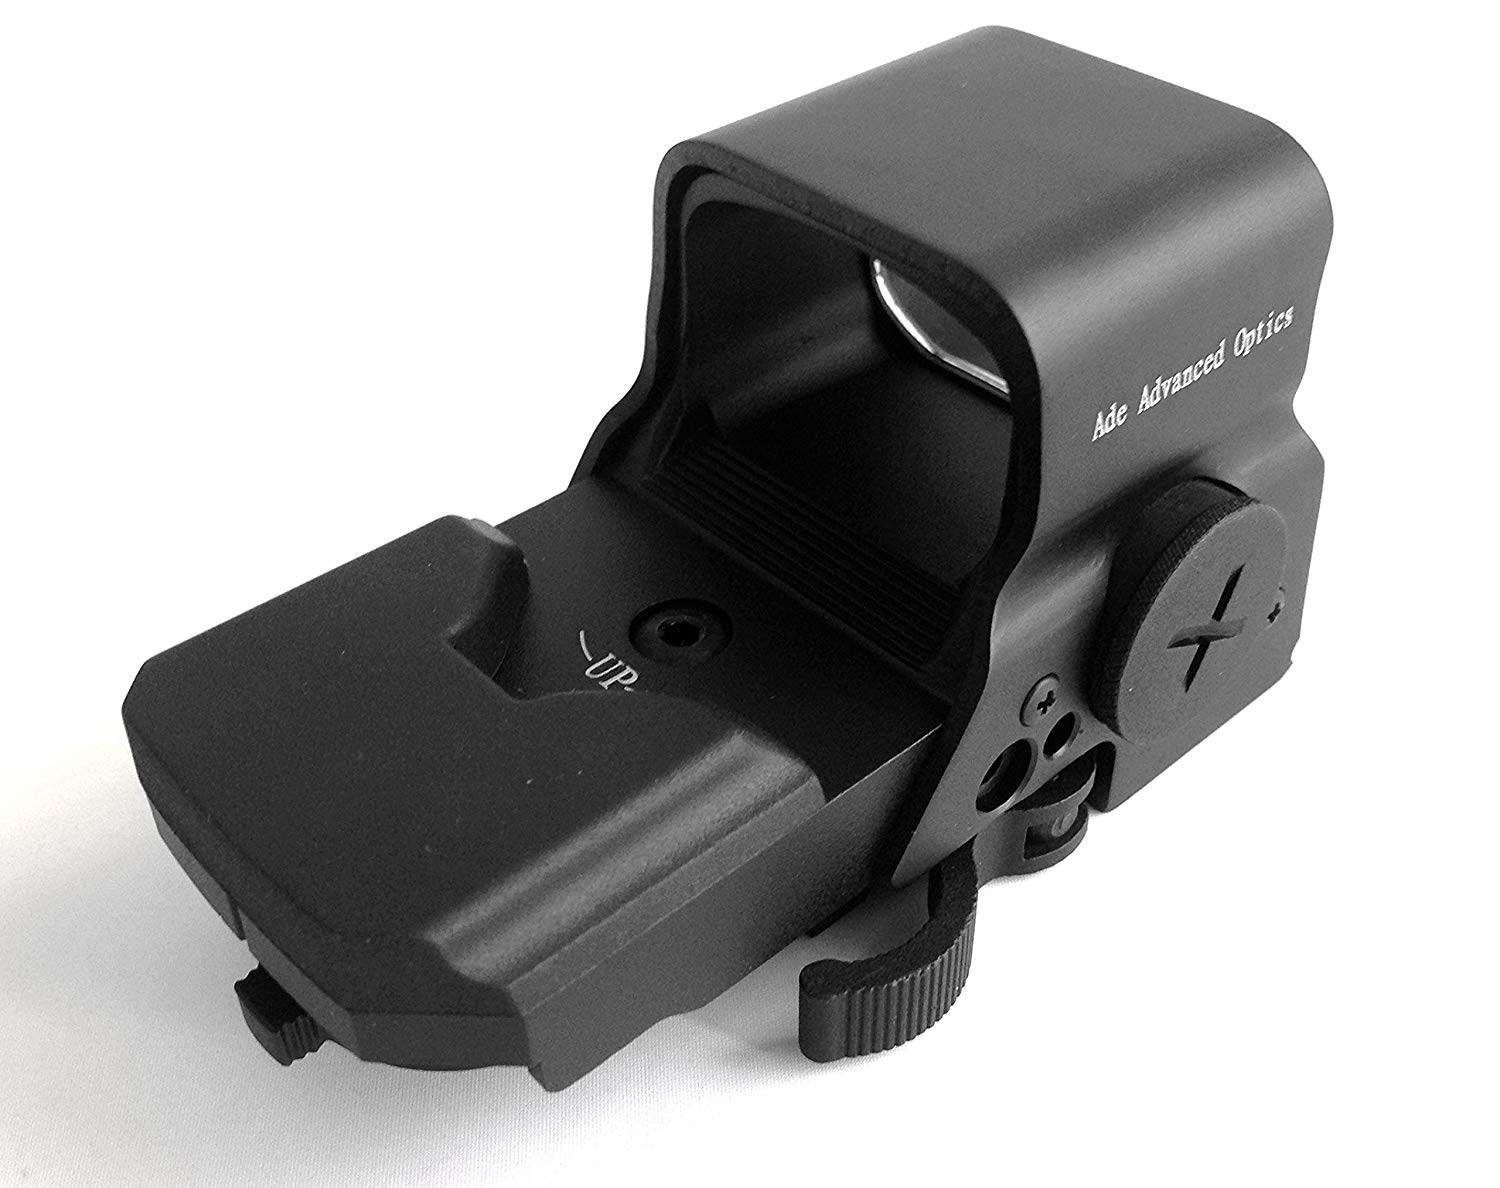 Best Red Dot Sight Under $100